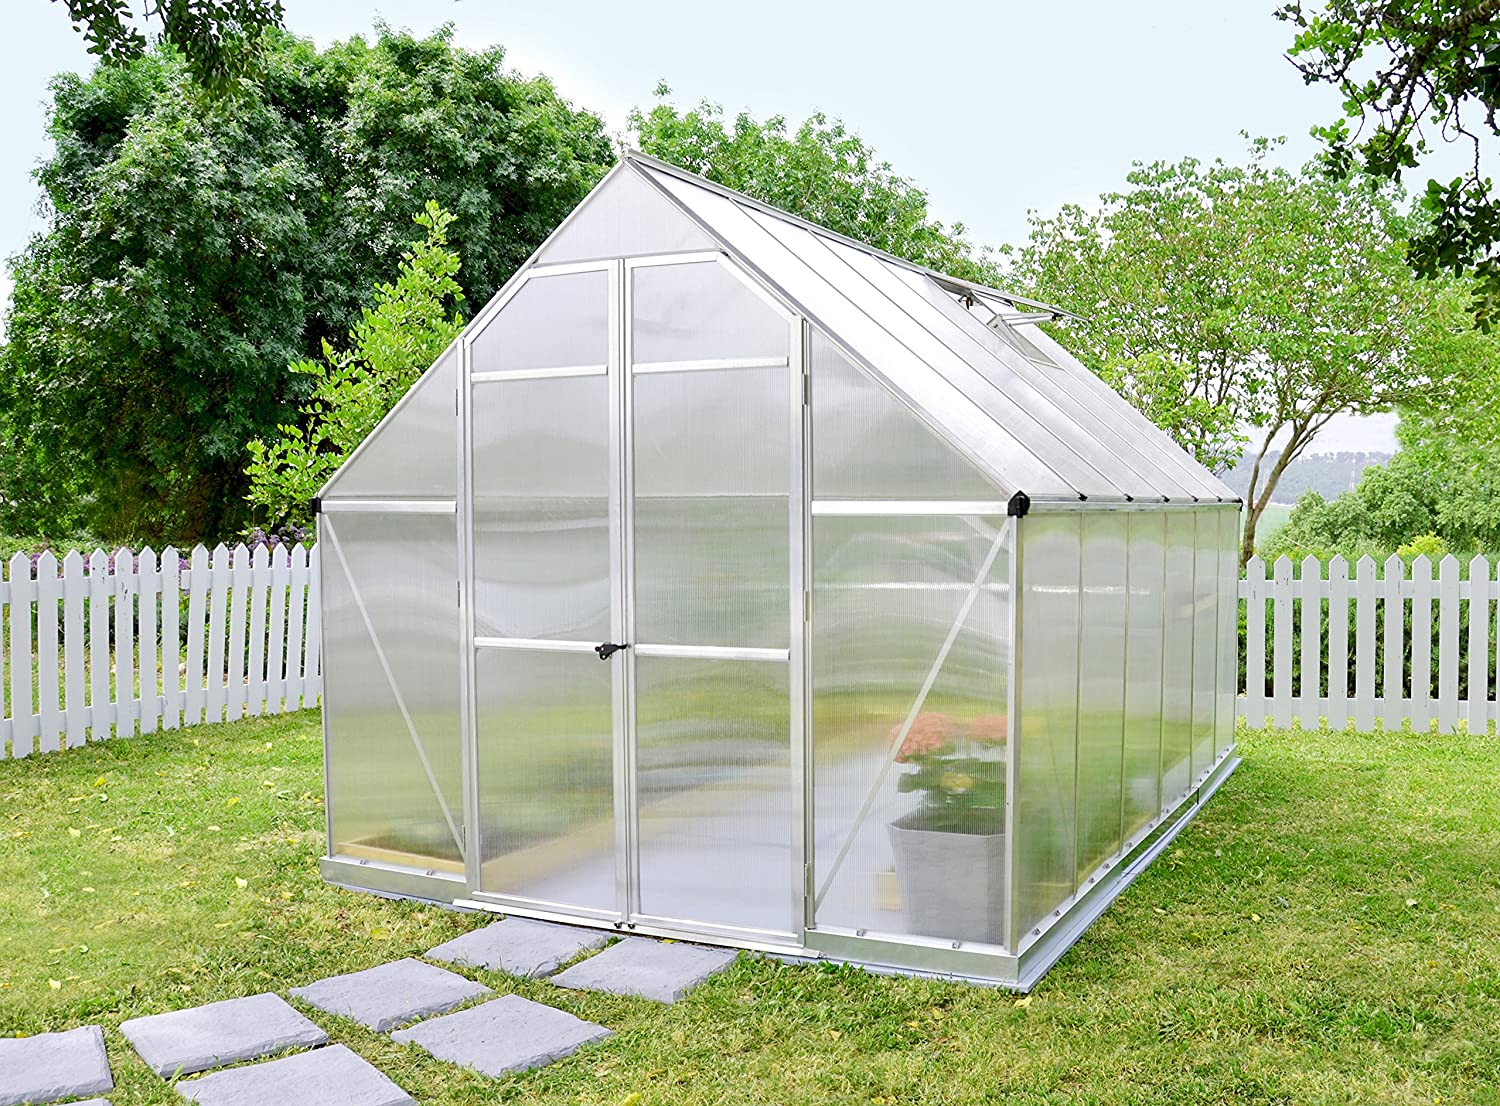 amazoncom palram nature series essence hobby greenhouse 8u0027 x 12u0027 x 8u0027 silver greenhouses for sale garden u0026 outdoor